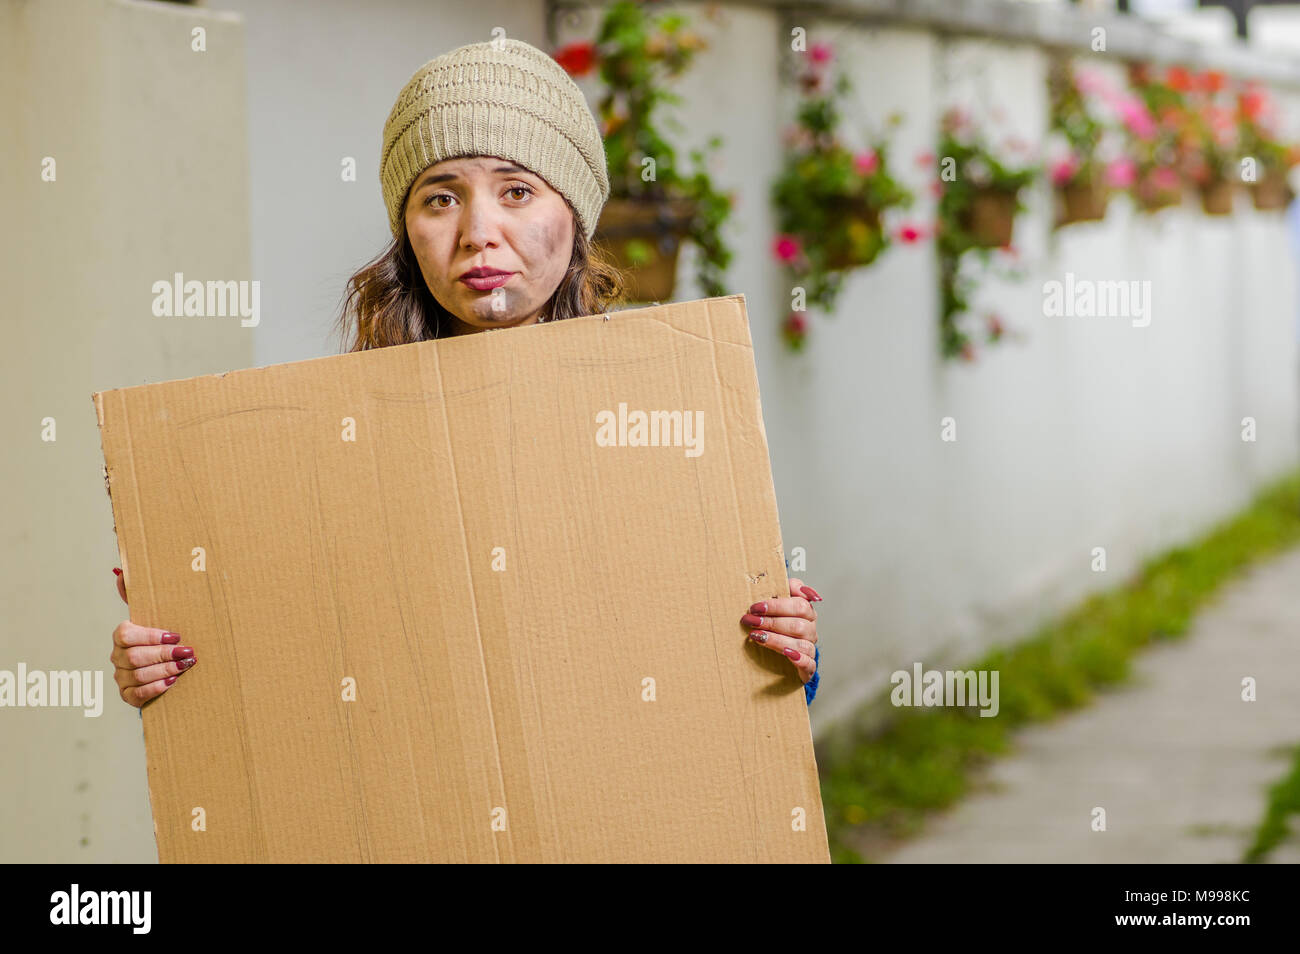 Outdoor view of homeless woman holding up blank cardboard sign - Stock Image